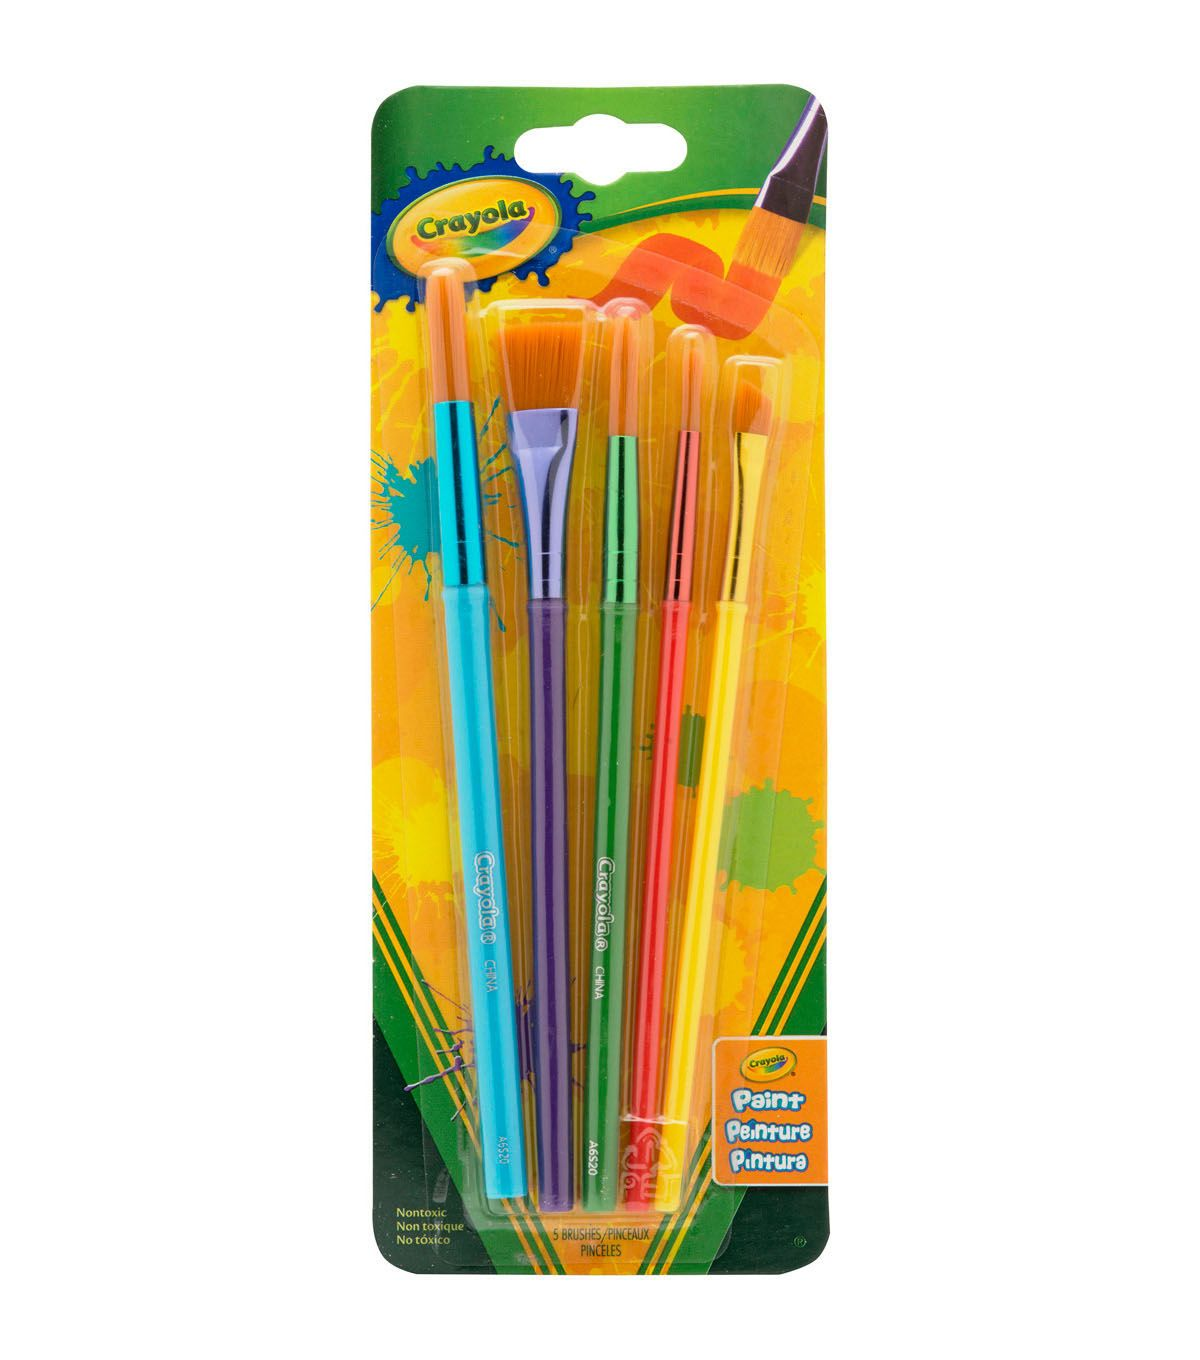 Crayola 5 Ct Art Craft Brush Set Paint Brushes Crayola Art